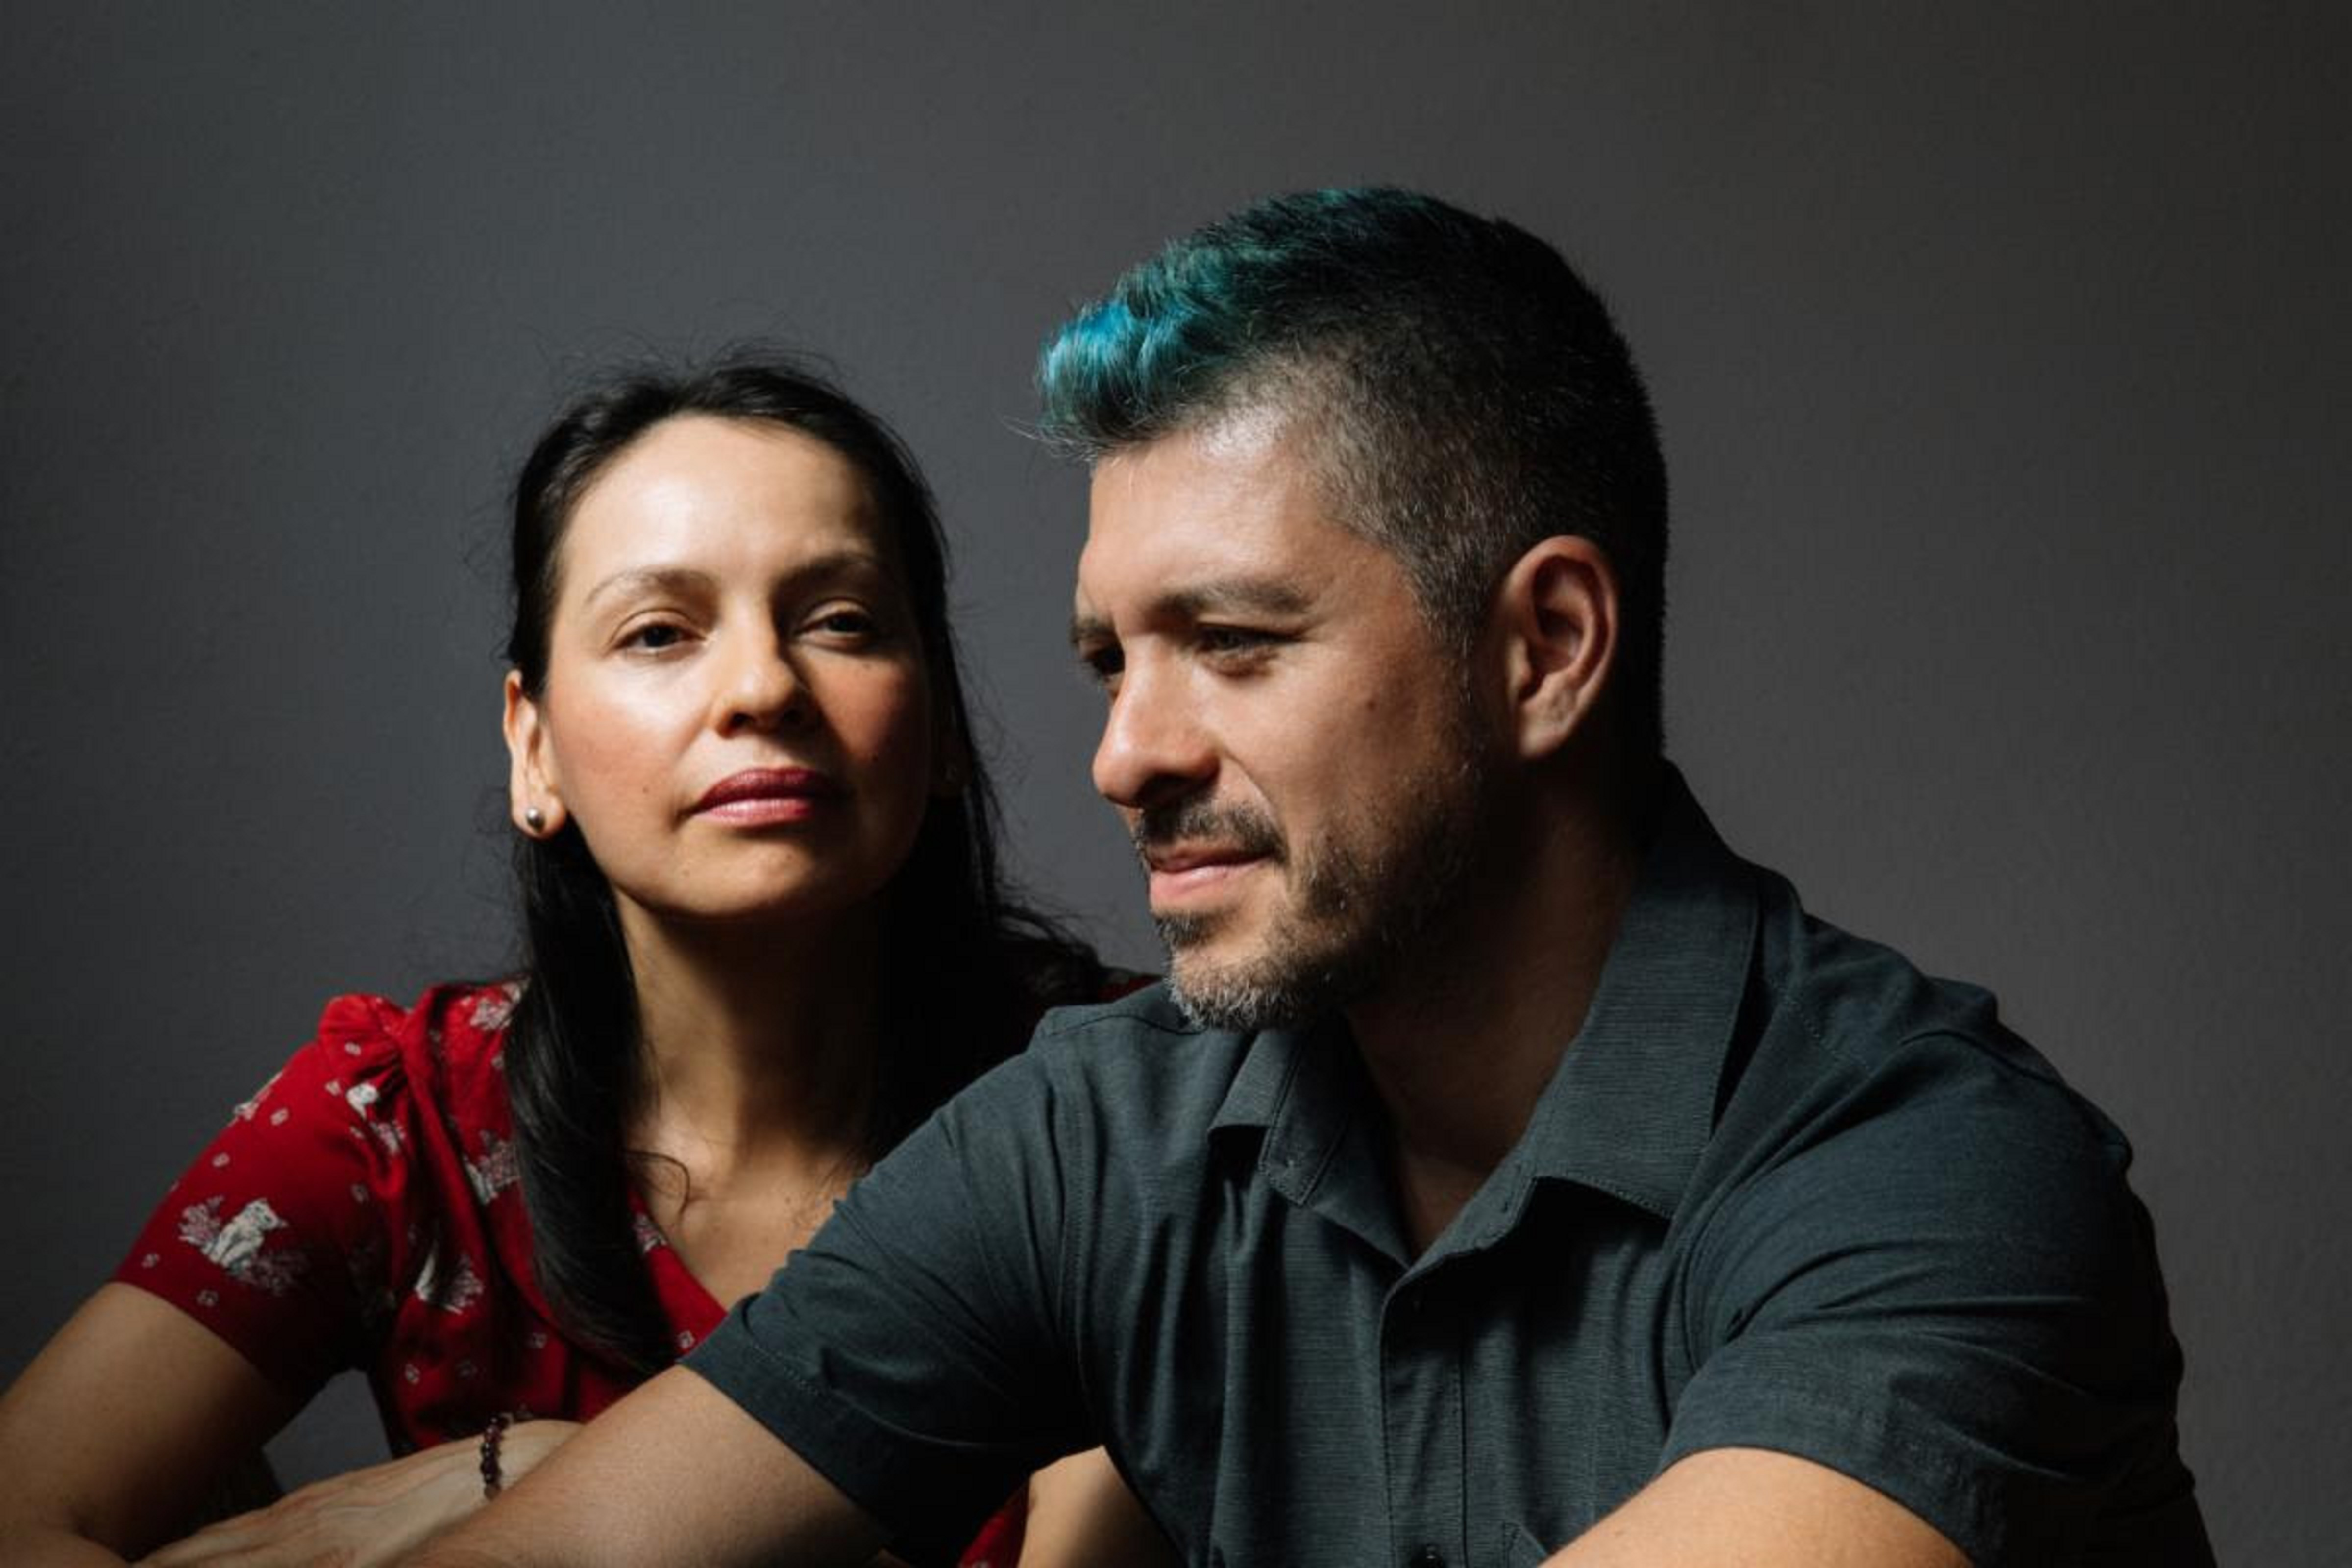 Rodrigo y Gabriela Central Park SummerStage livestream tonight celebrating Hispanic Heritage Month